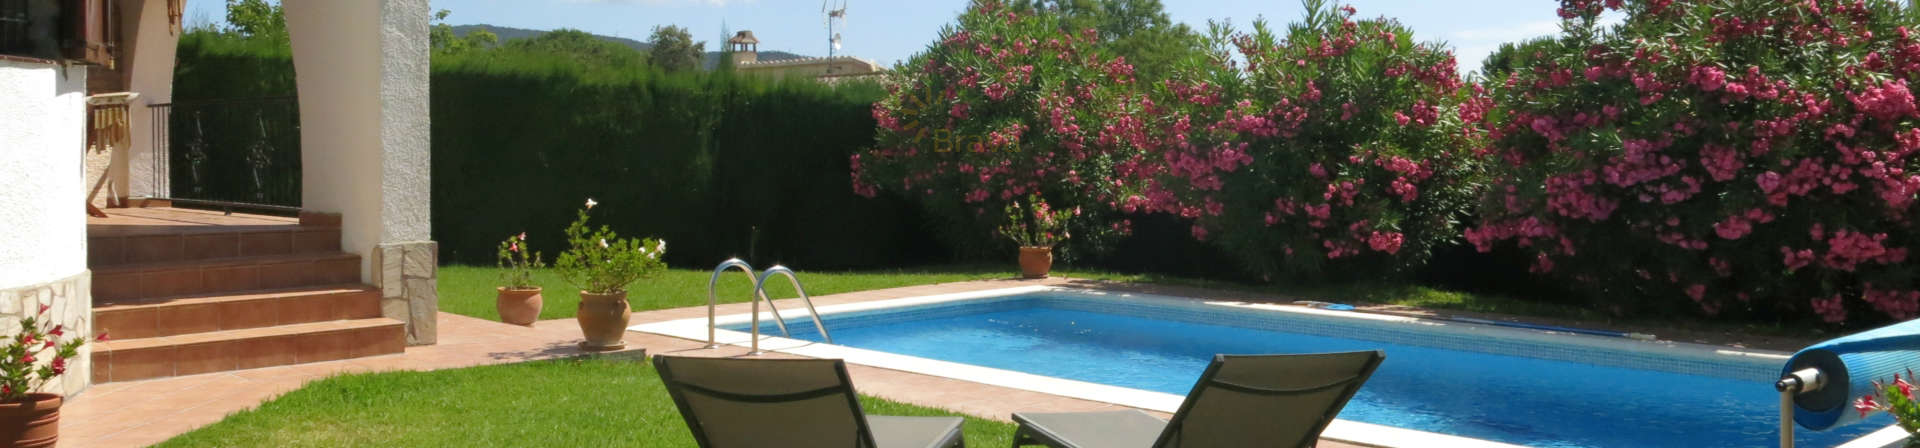 Nice house with wonderful garden and pool in Cabanyes.